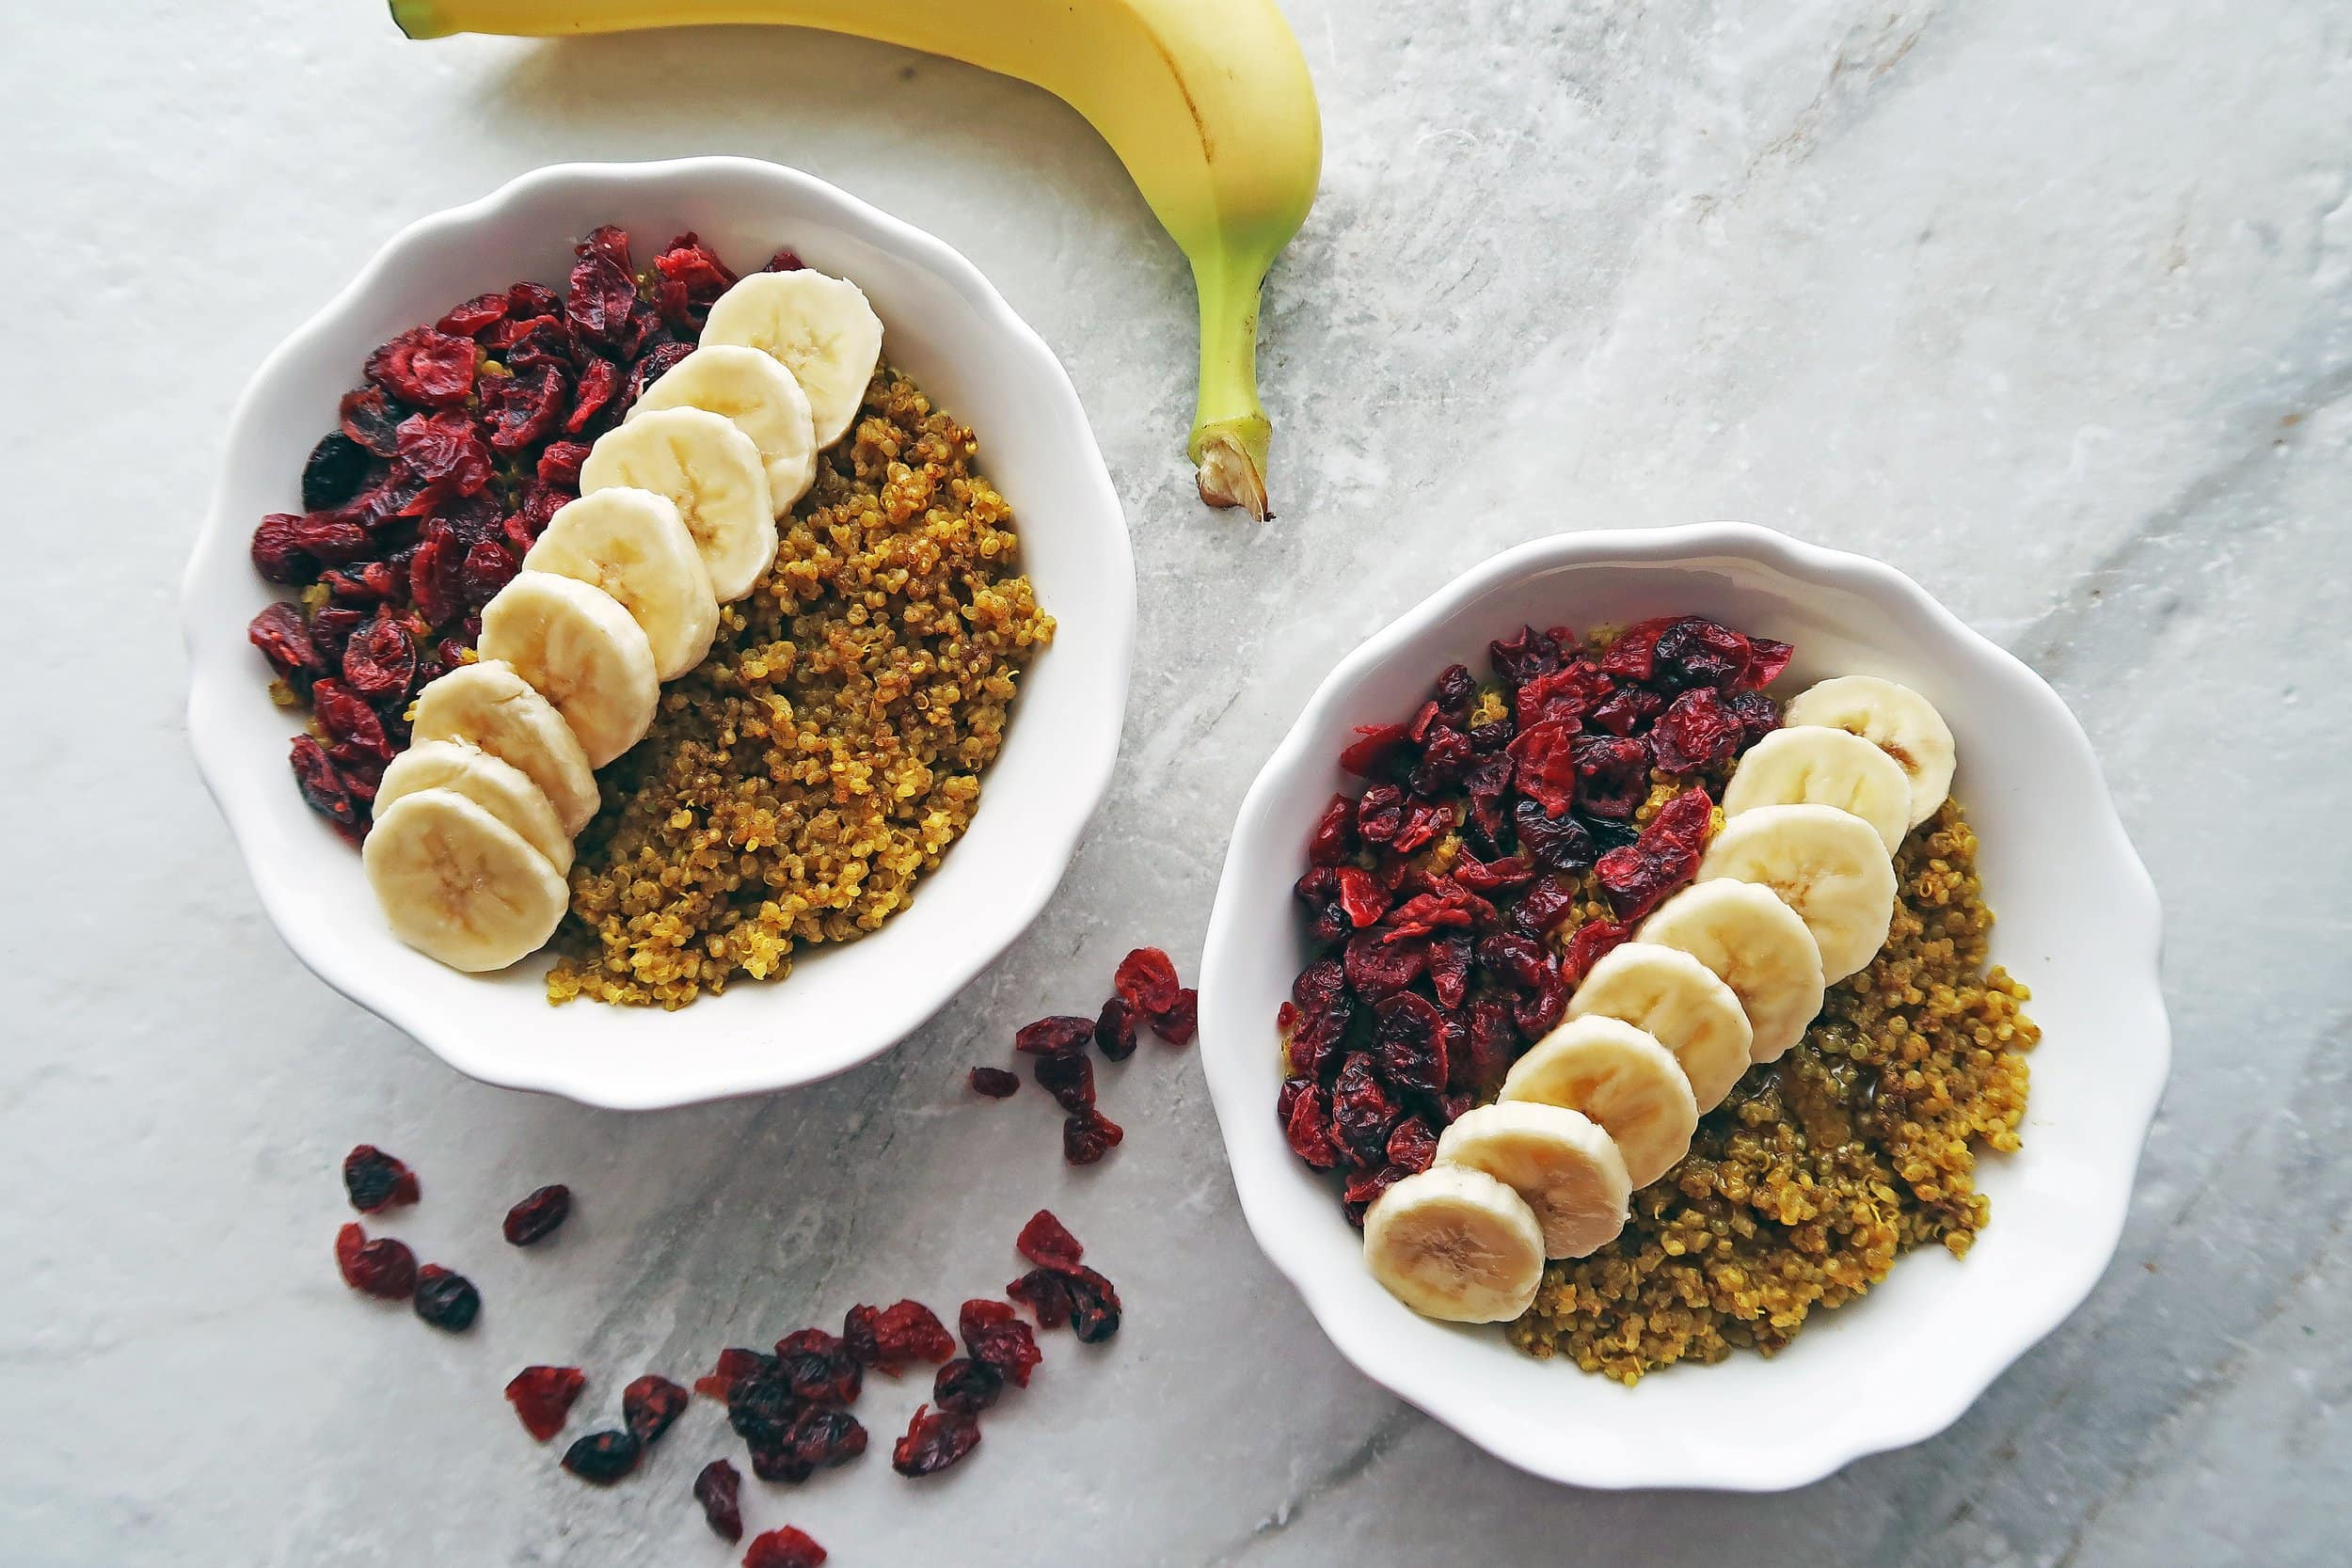 Two golden milk (turmeric latte) quinoa bowls garnished with dried cranberries and banana slices.